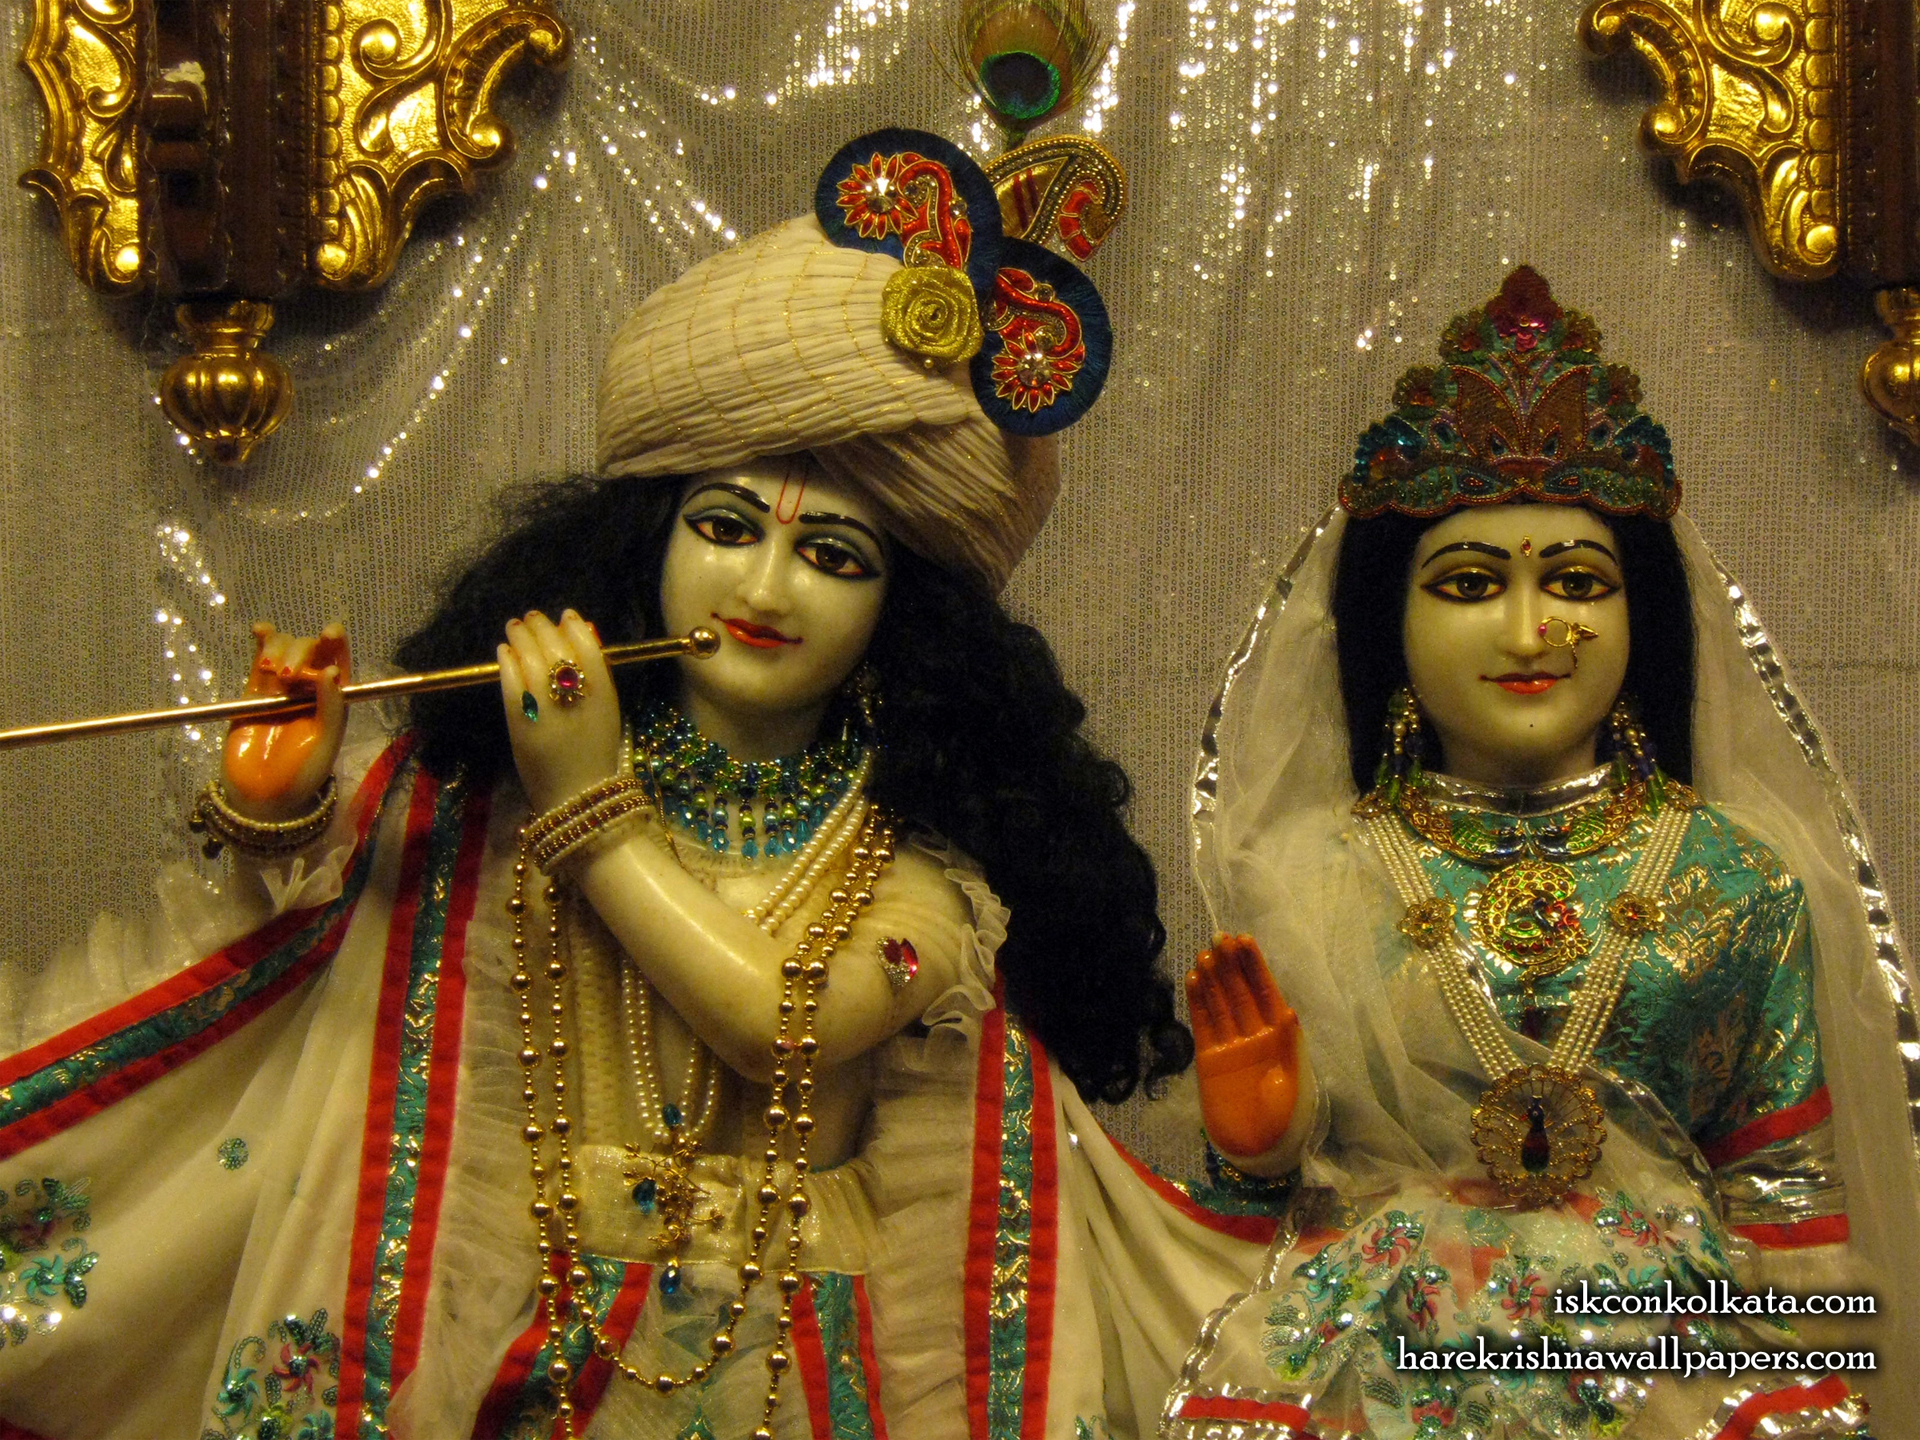 Sri Sri Radha Govinda Close up Wallpaper (003) Size 1920x1440 Download